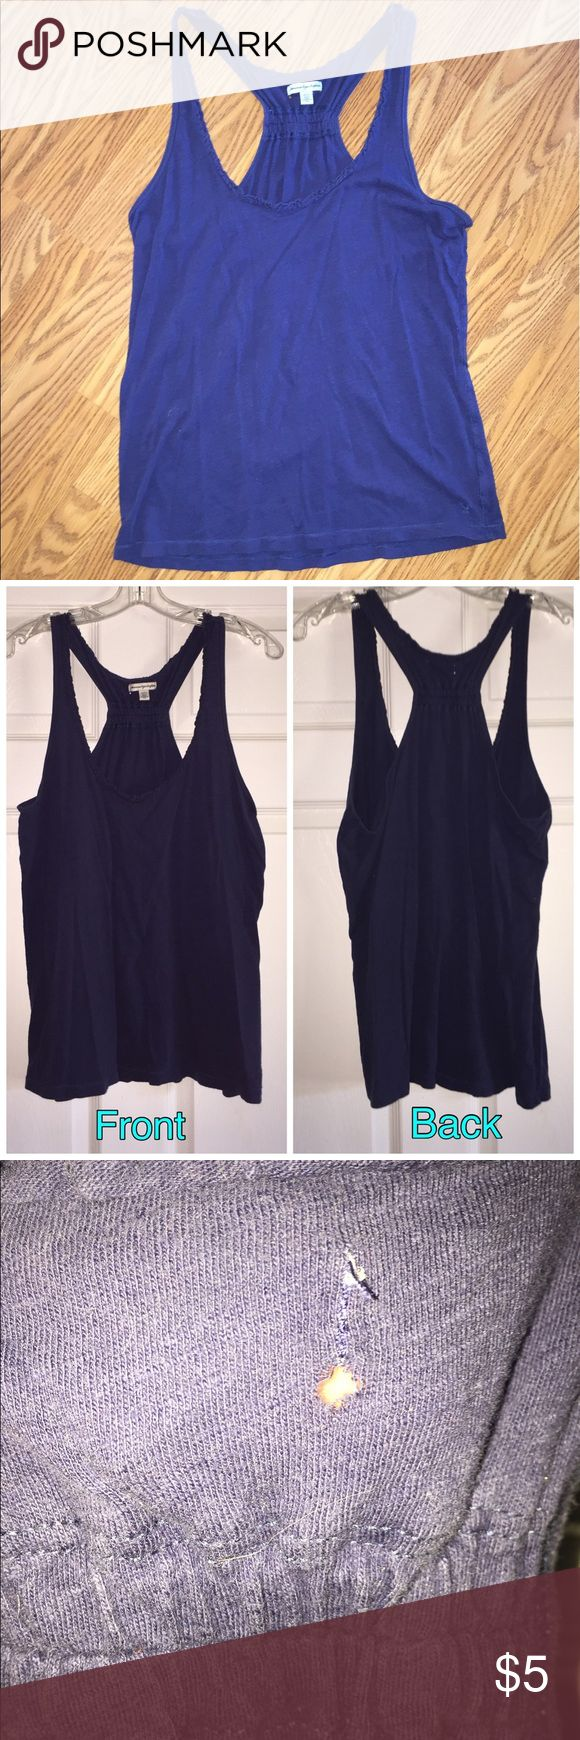 Razorback Tank Top This VERY loved Navy Blue Razorback still has plenty of life left! There's a few small holes in the back around the tag (see third and fourth picture.) Add a white tank top underneath and it'll be a perfect summer shirt! Bundle 3 or more items and save 15%!!! American Eagle Outfitters Tops Tank Tops